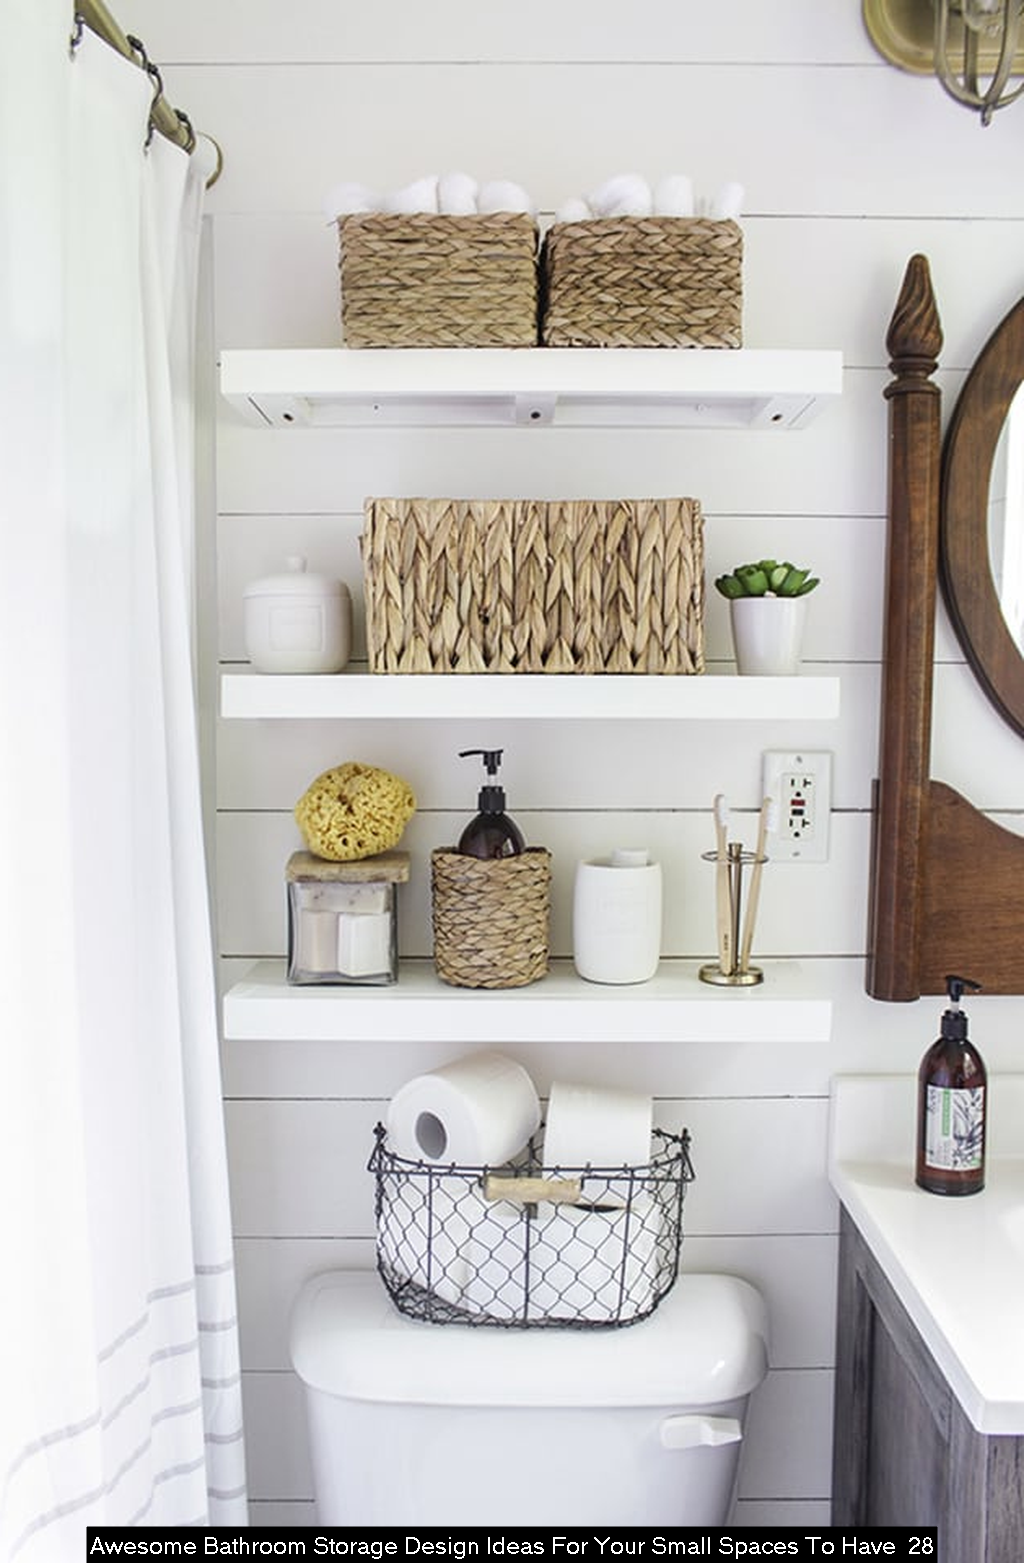 30+ Awesome Bathroom Storage Design Ideas For Your Small ...